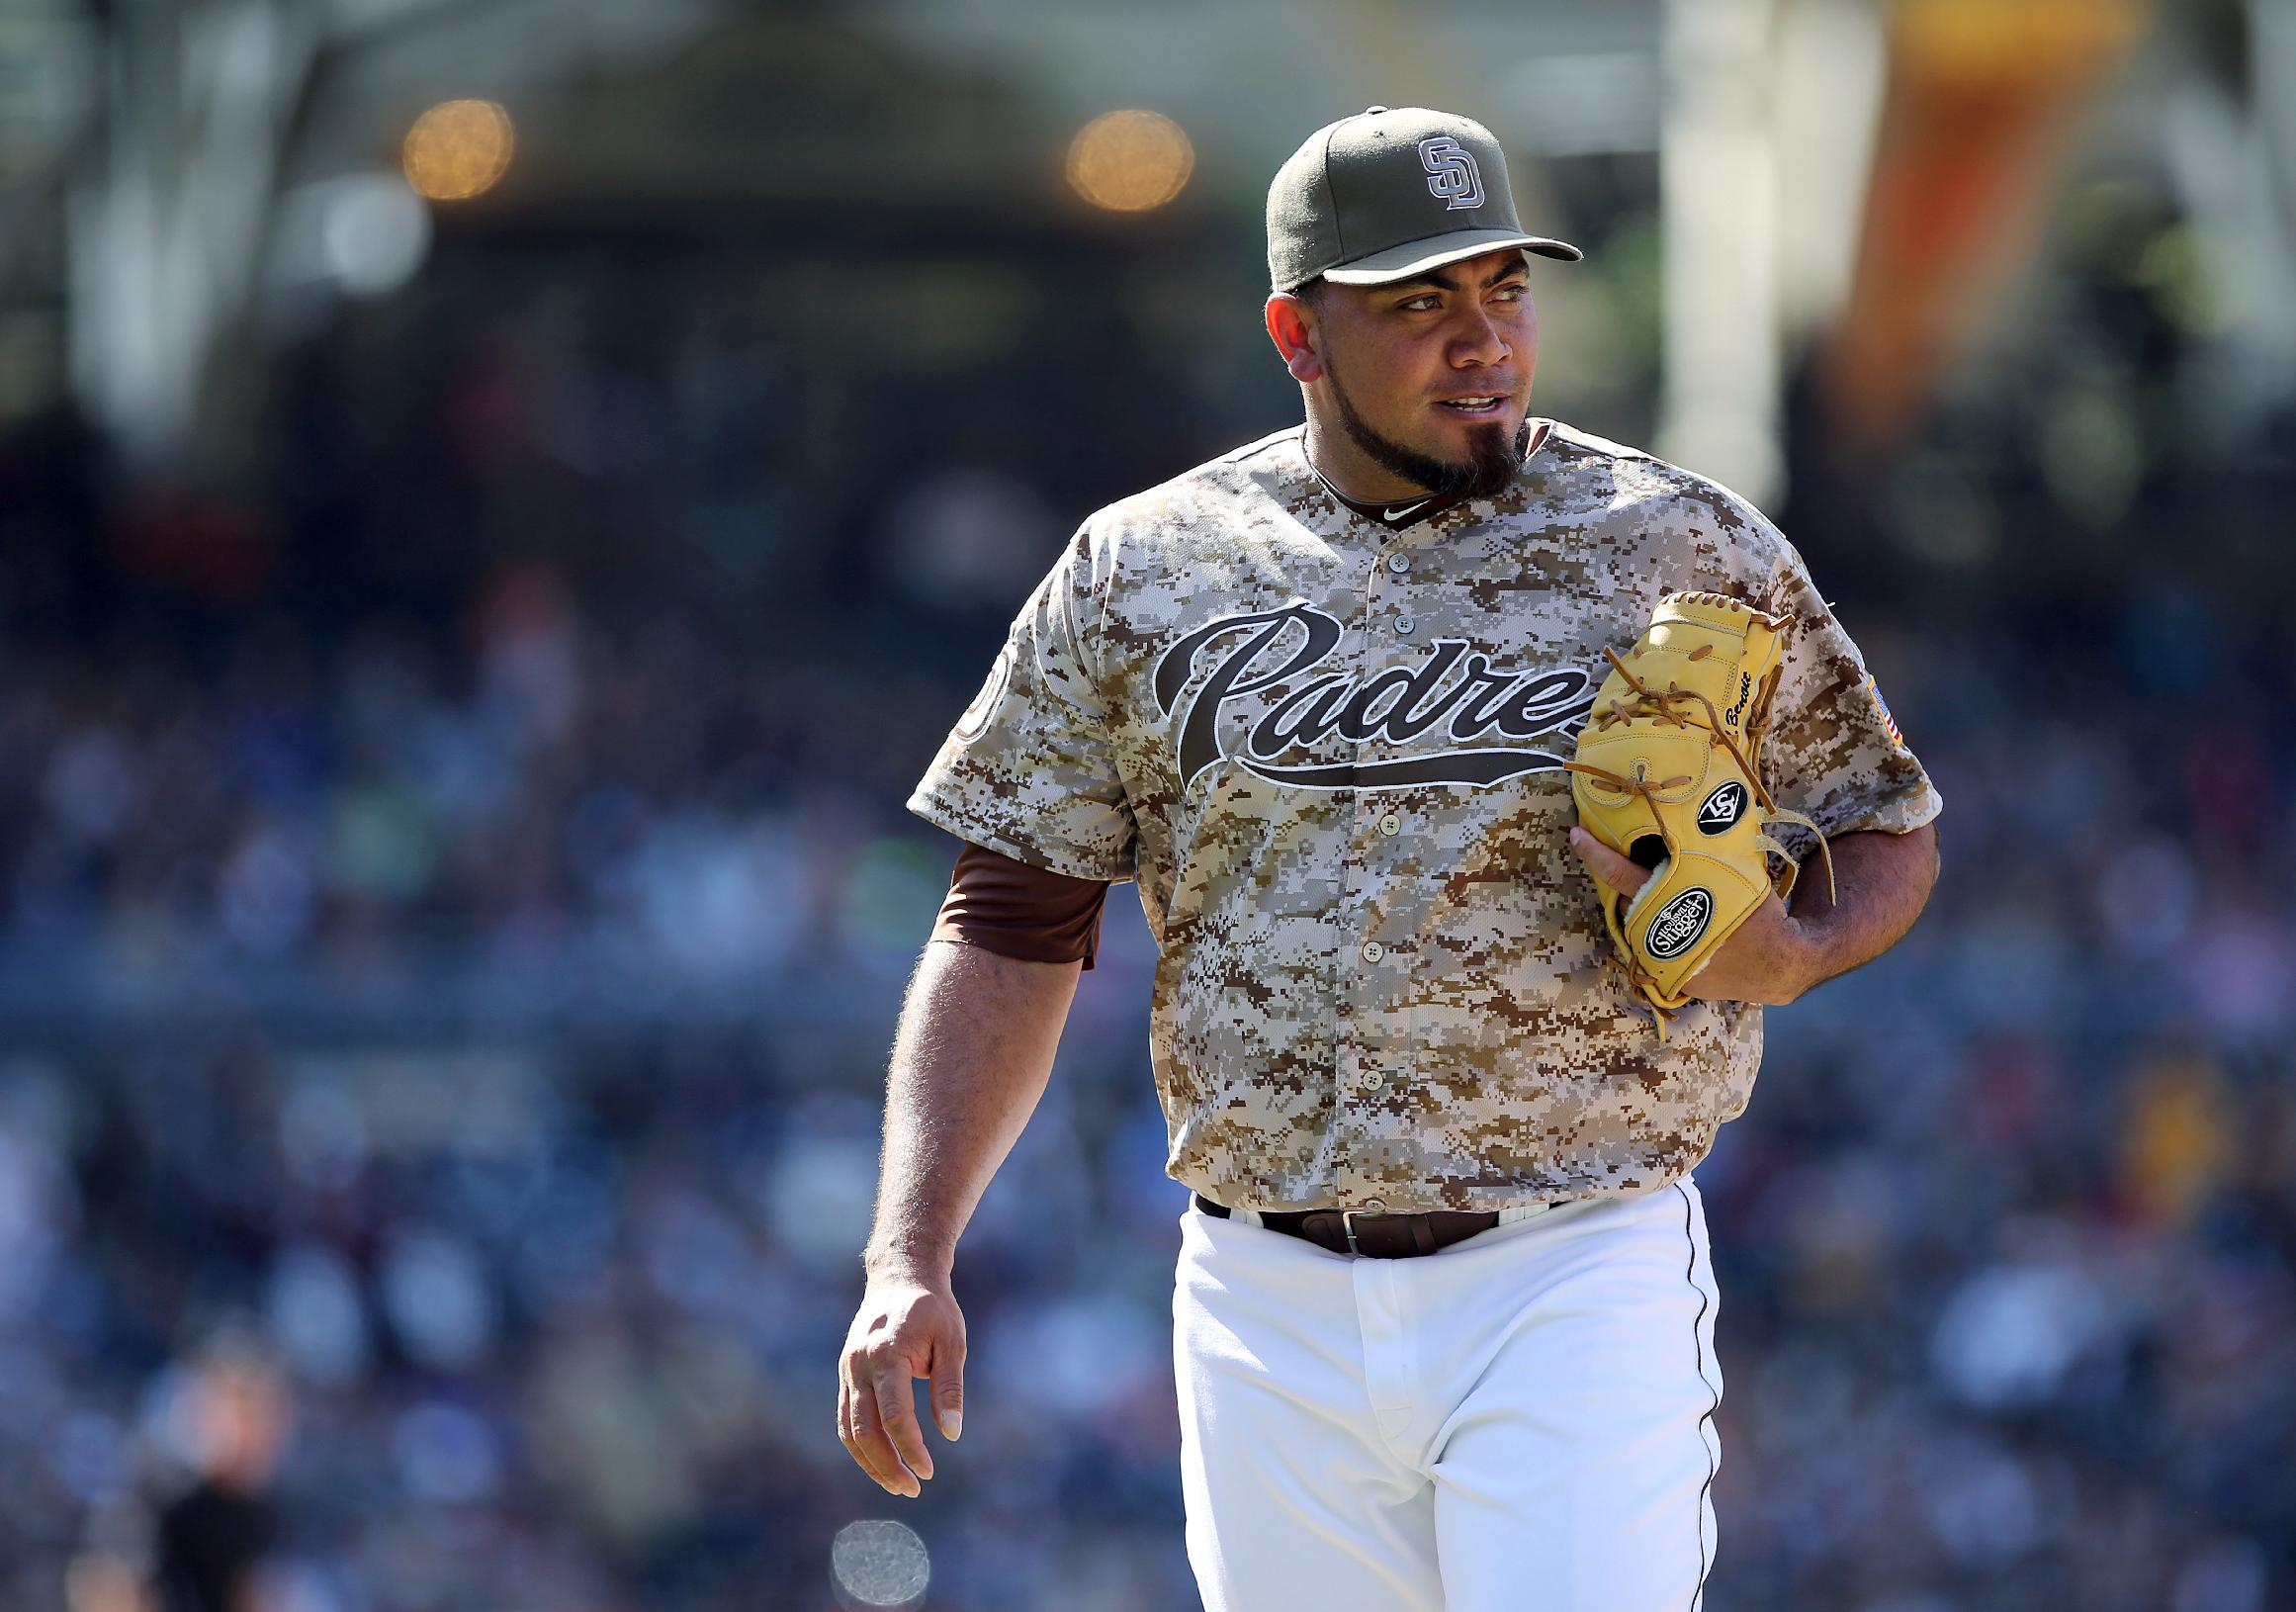 San Diego Padres relief pitcher Jouquin Benoit walks off the field after pitching the eighth inning against the Detroit Tigers in a baseball game on Sunday, April 13, 2014, in San Diego. San Diego Padres won the game 5-1